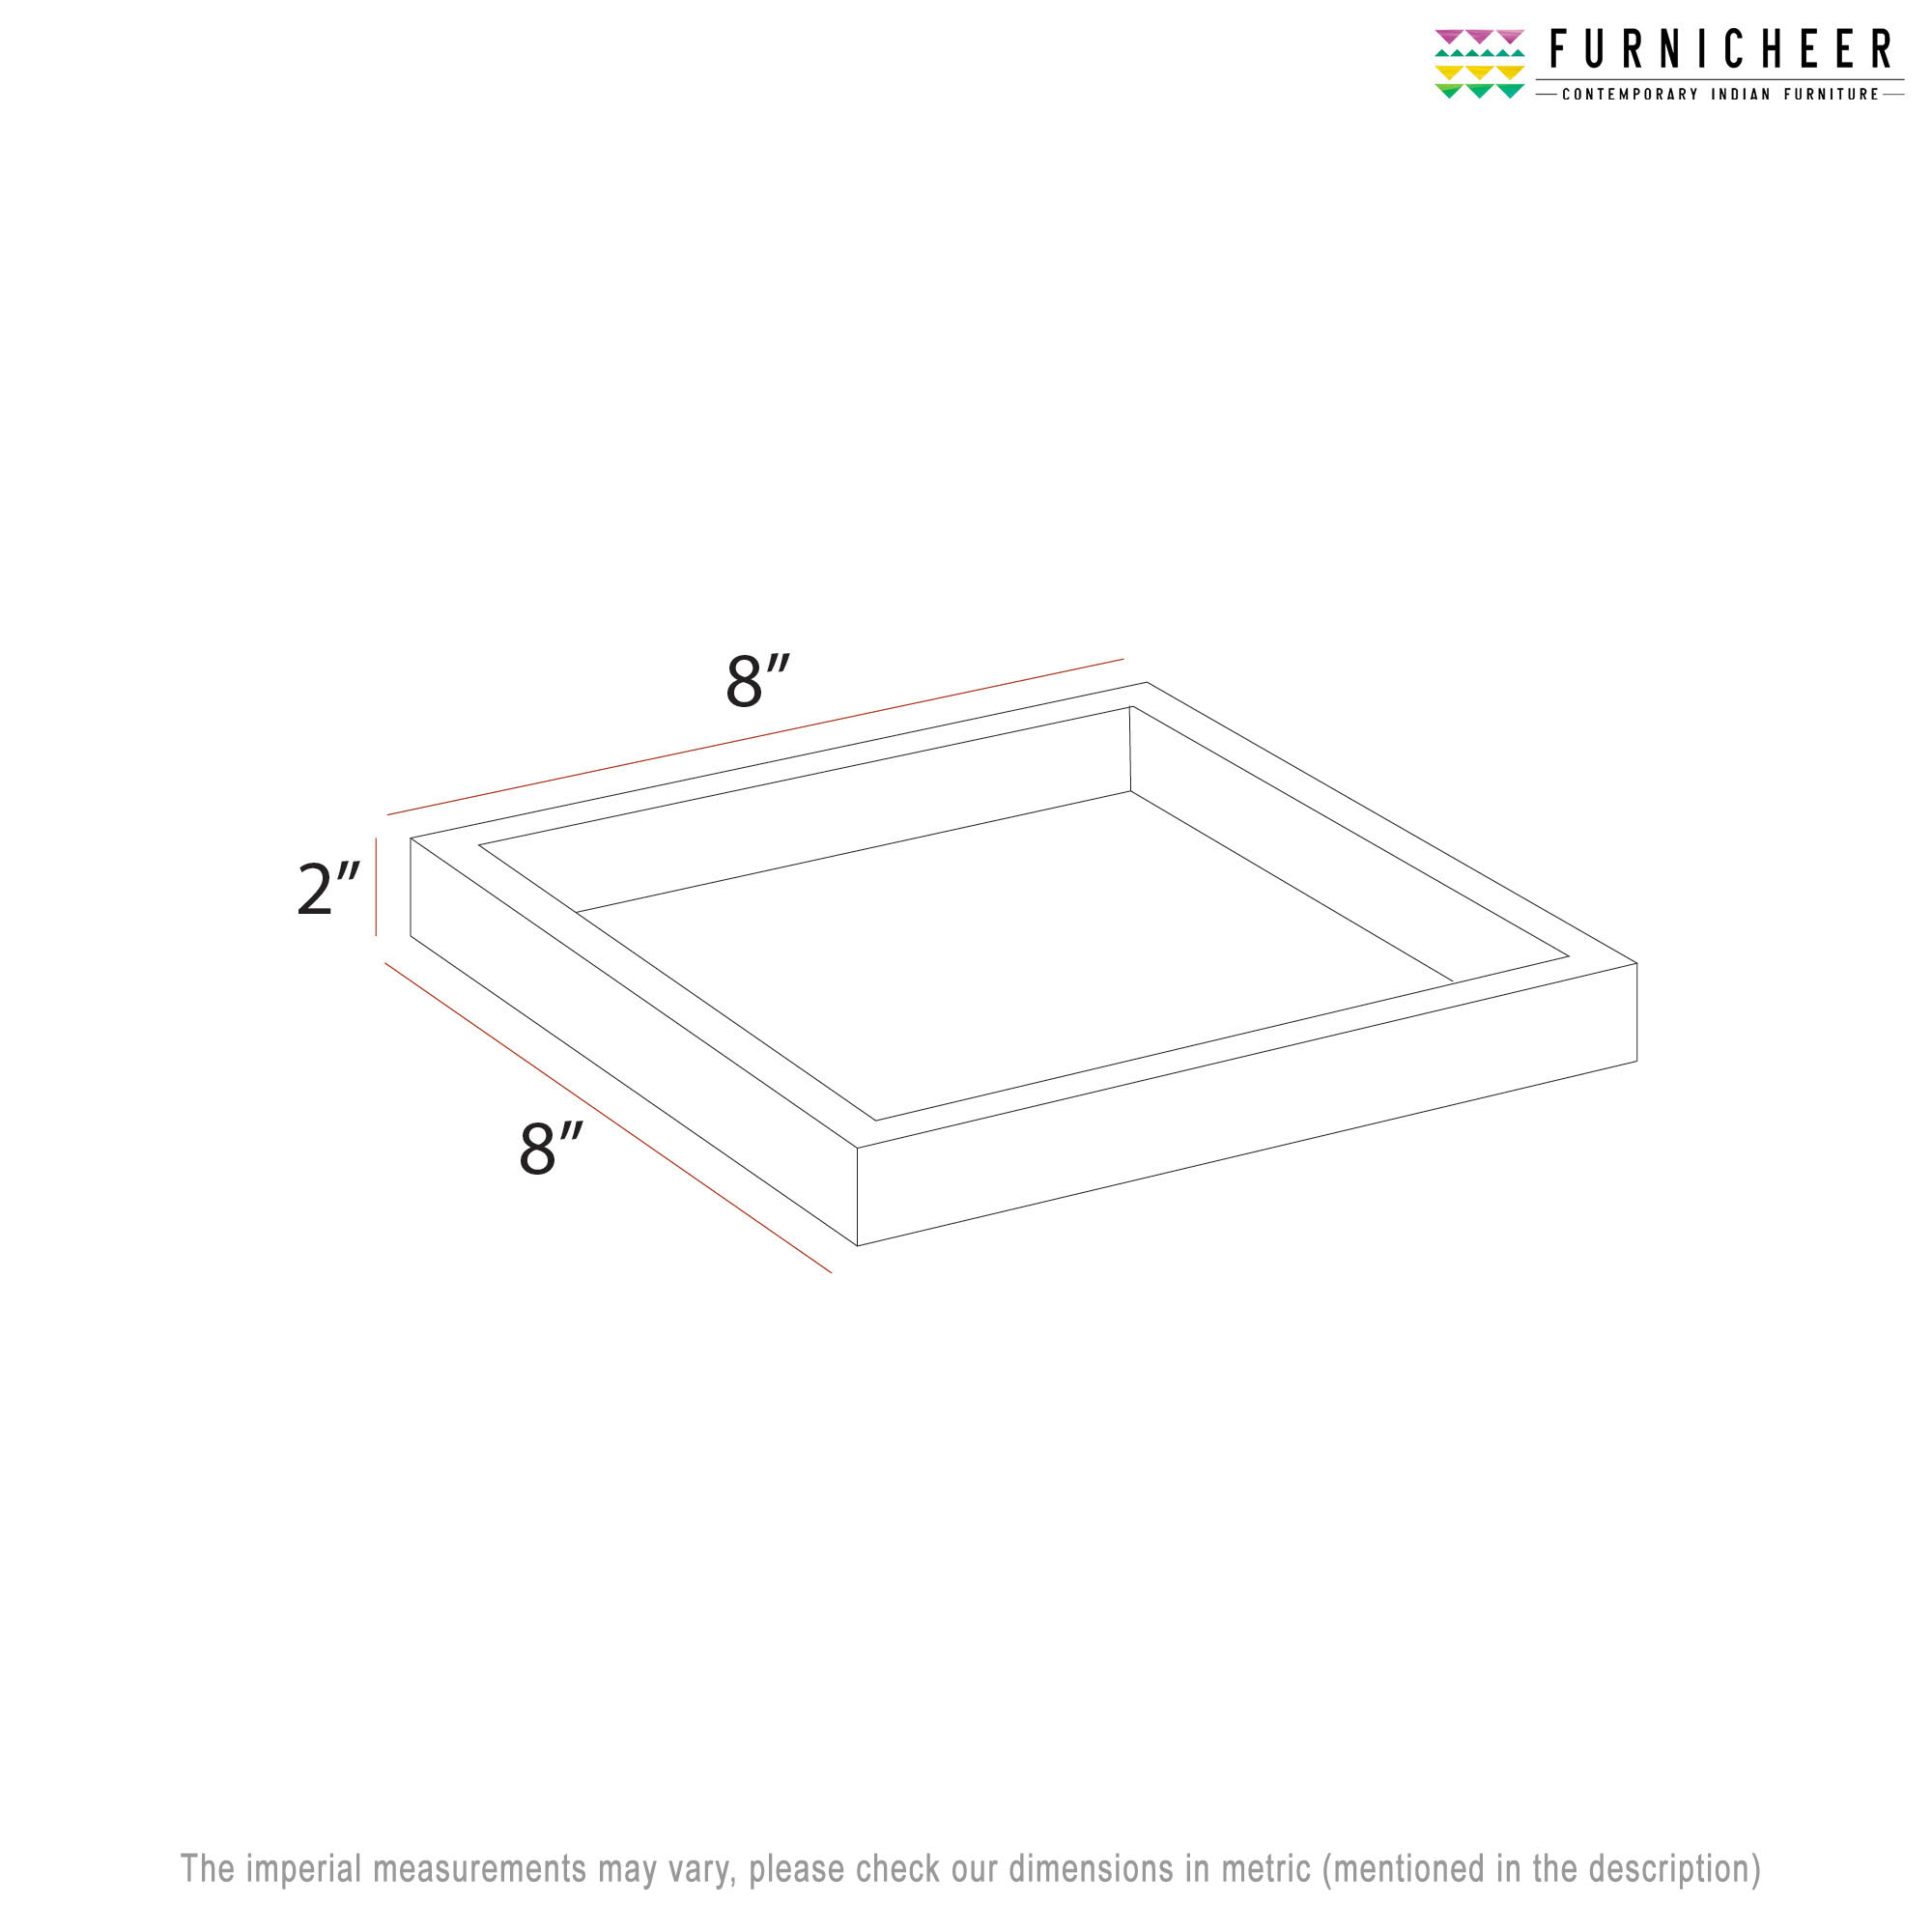 SERVING TRAY 8 X 8